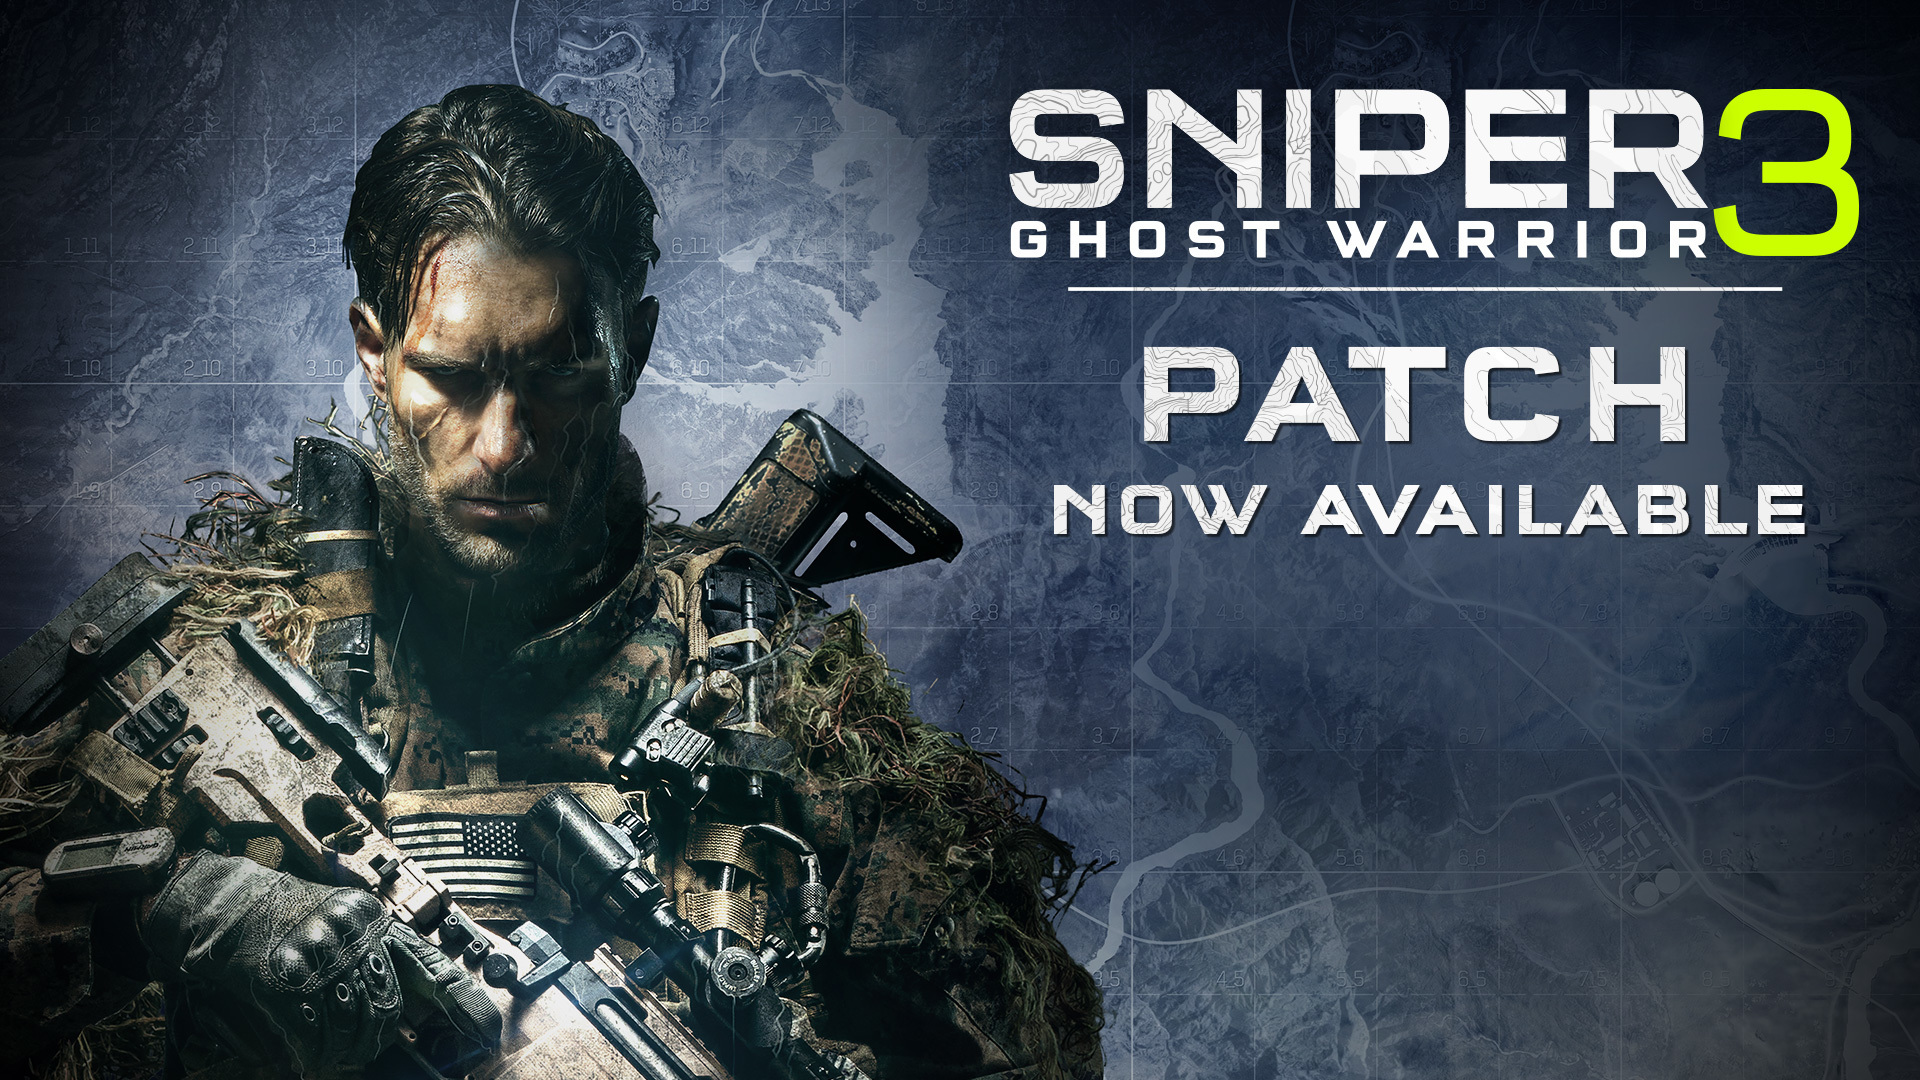 sniper ghost warrior 3 :: patch 1.3 - now available!